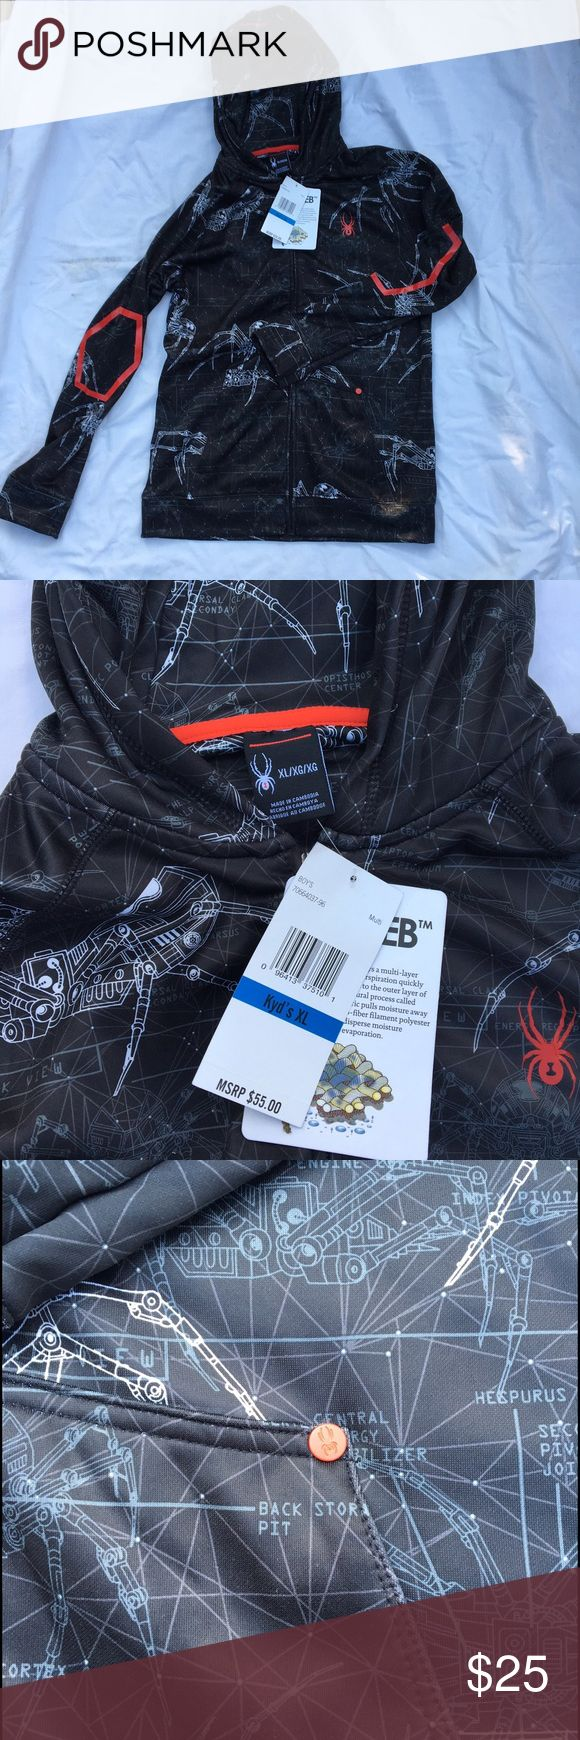 """Boy's Spyder Mechanical Jacket Size XL NWT Dry Web Boy's Spyder jacket with very cool Mechanical design.  Dry Web moisture wicking technology.  Original retail $55.00.  92% polyester, 8% spandex.  Armpit to armpit 20.5"""", Length 27.5"""", Arm 29"""".  Thanks for looking, and happy Poshing!! Spyder Jackets & Coats"""